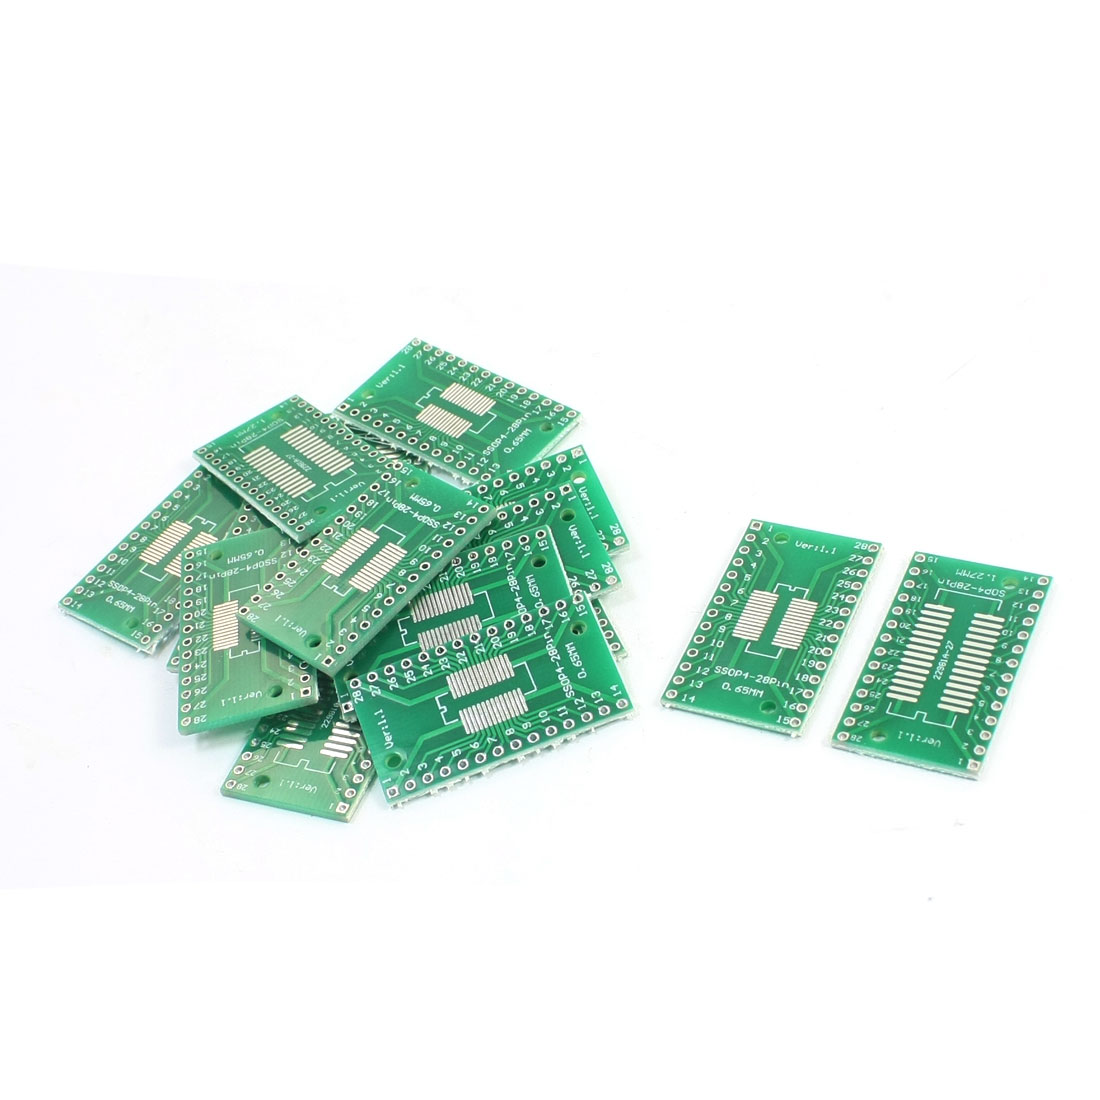 15 Pcs SMD SOP28 SSOP28 TSSOP28 0.65mm 1.27mm to DIP24 24Pin 2.54mm IC PCB Plate Adapter Converter Board